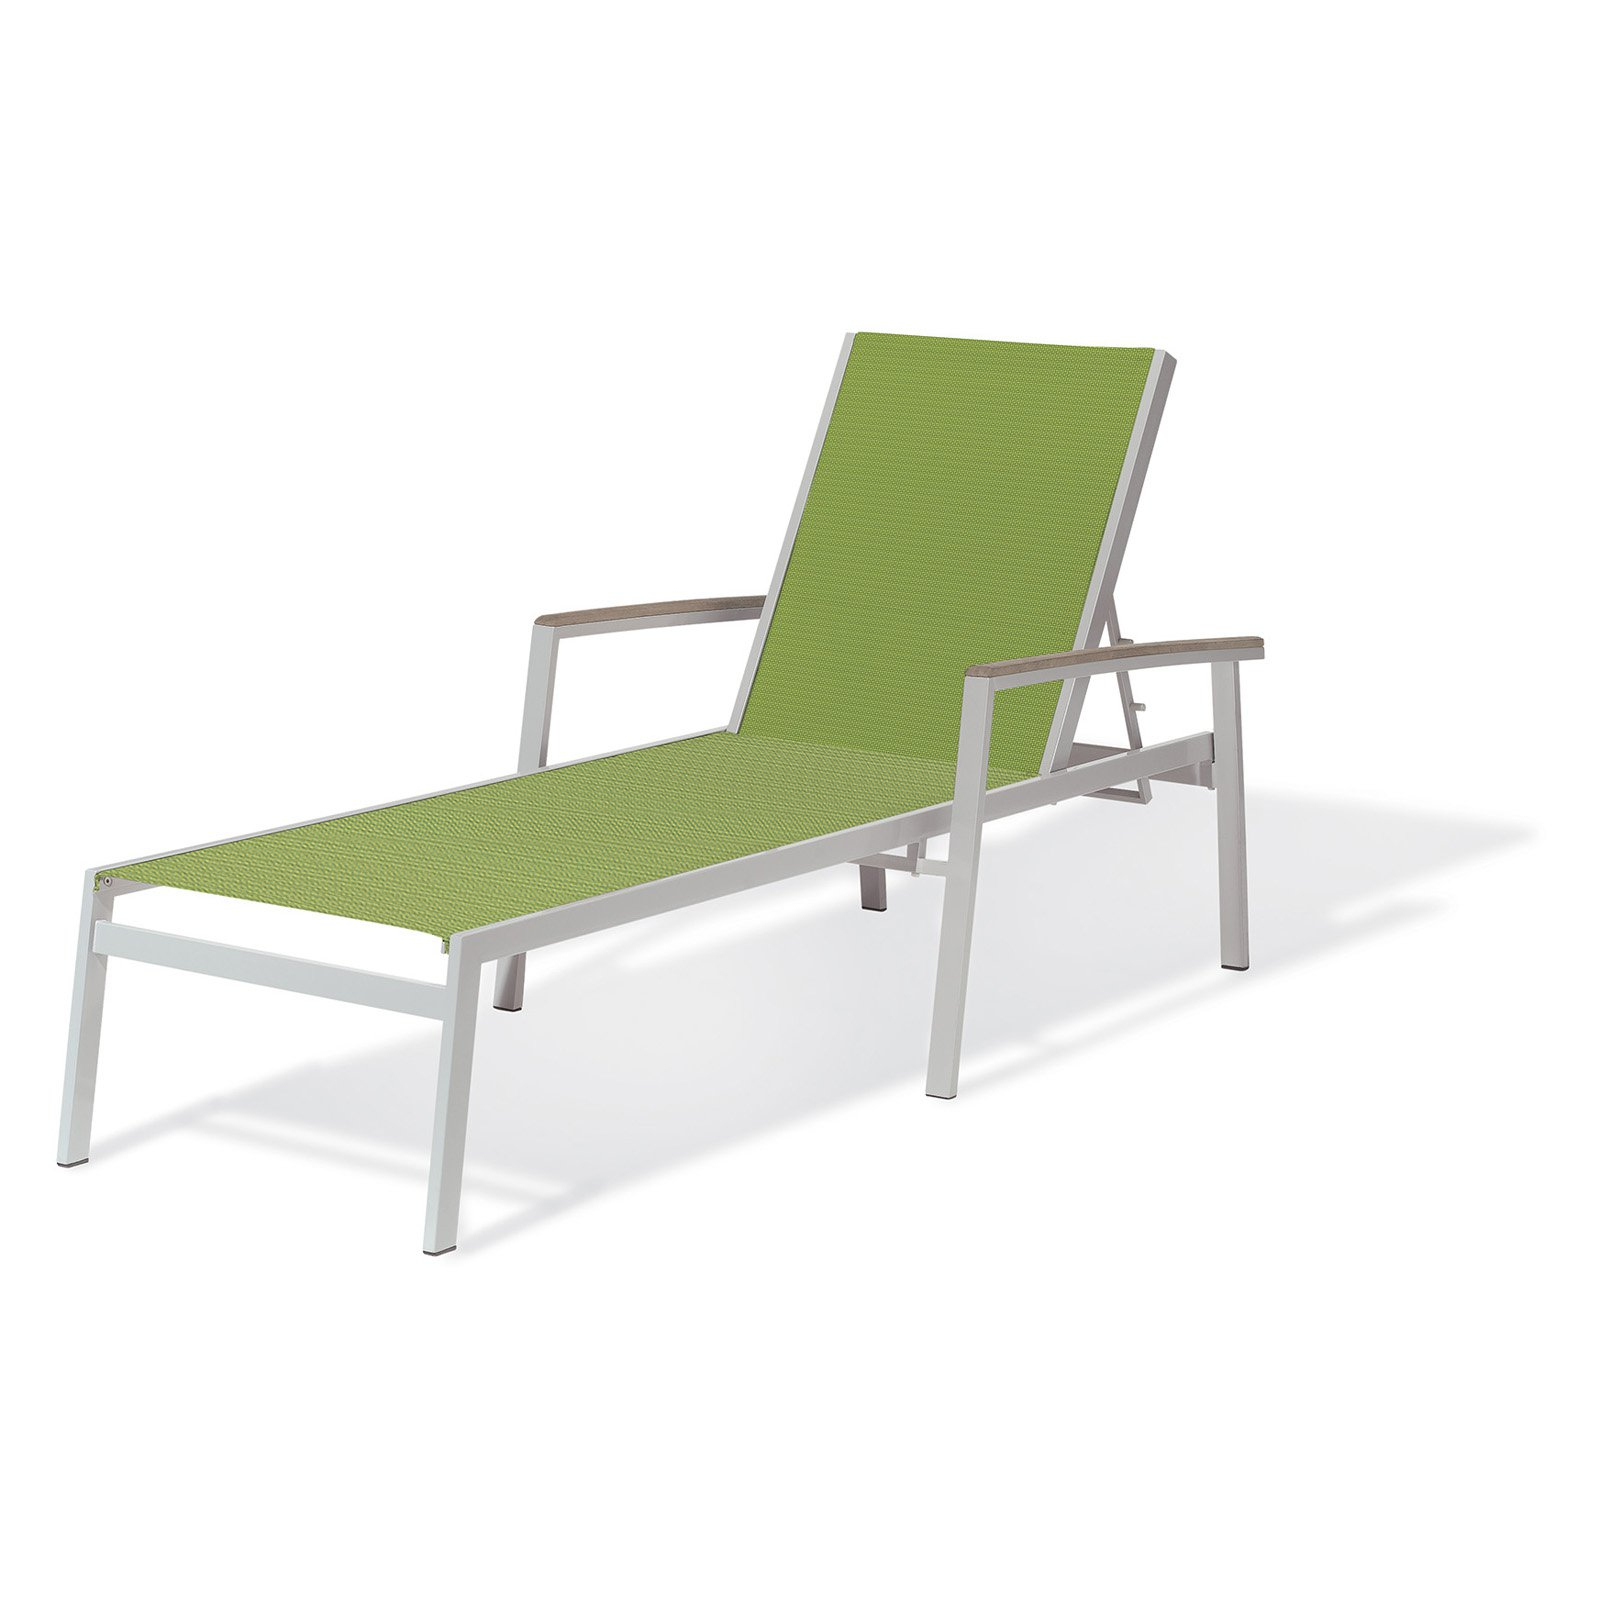 Shore Aluminum Outdoor Chaise Lounges Pertaining To Fashionable Oxford Garden Travira Aluminum Outdoor Chaise Lounge Go (View 16 of 25)